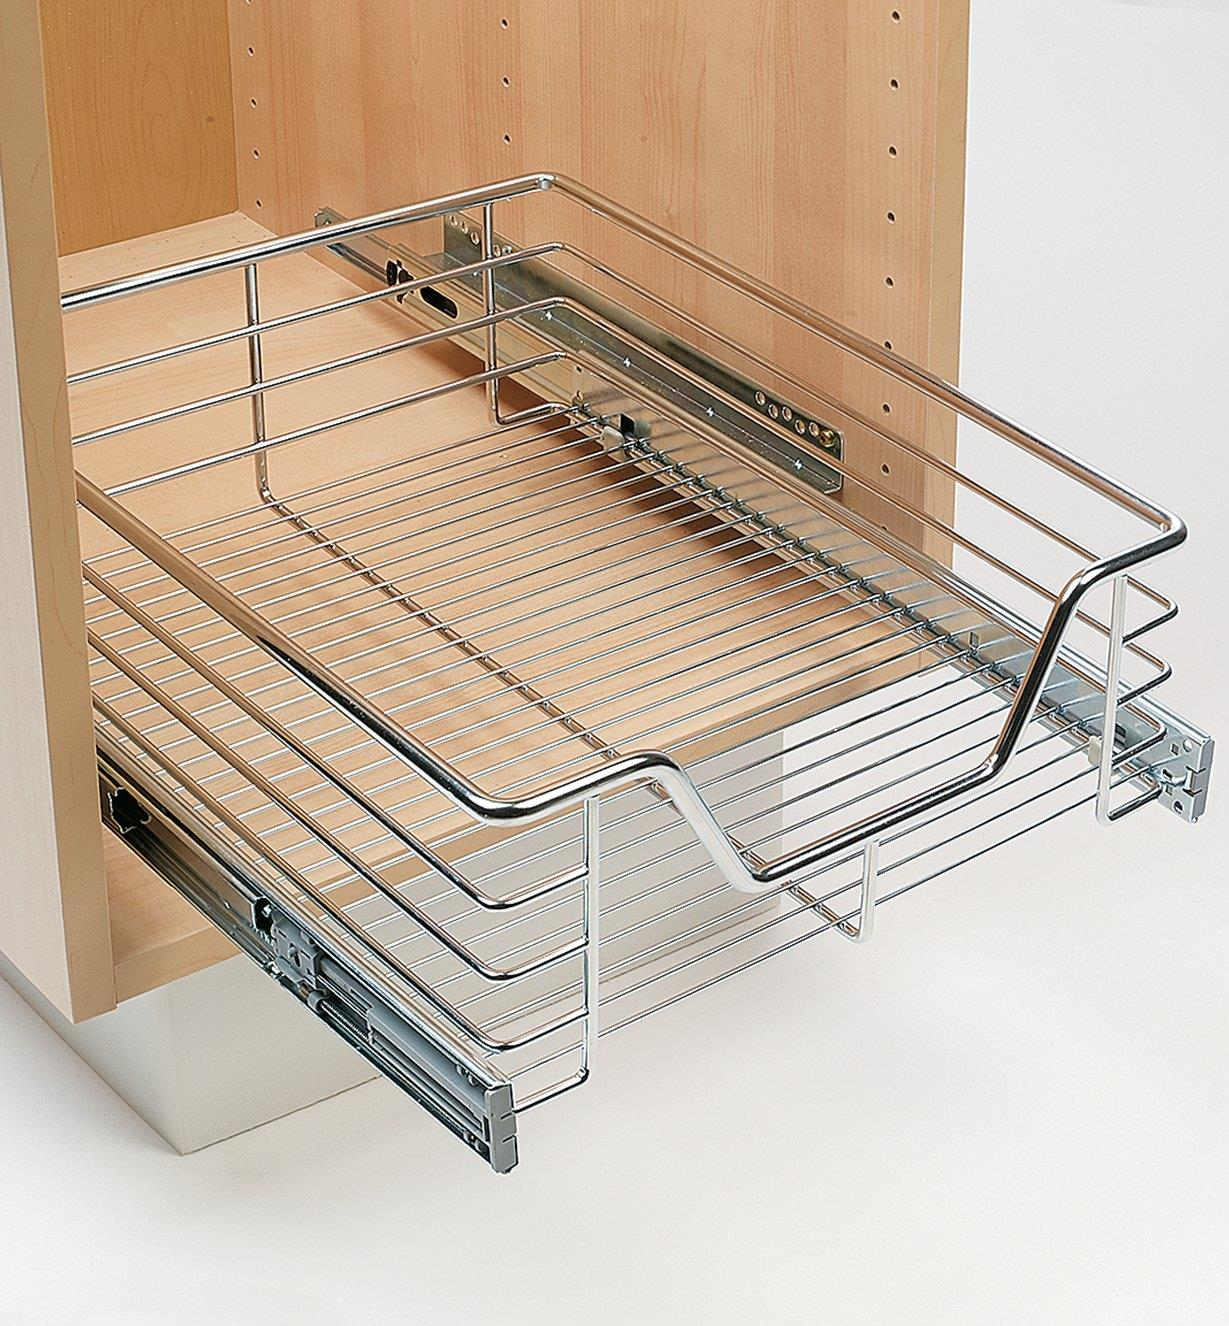 Pull-Out Wire Drawer installed in a cabinet